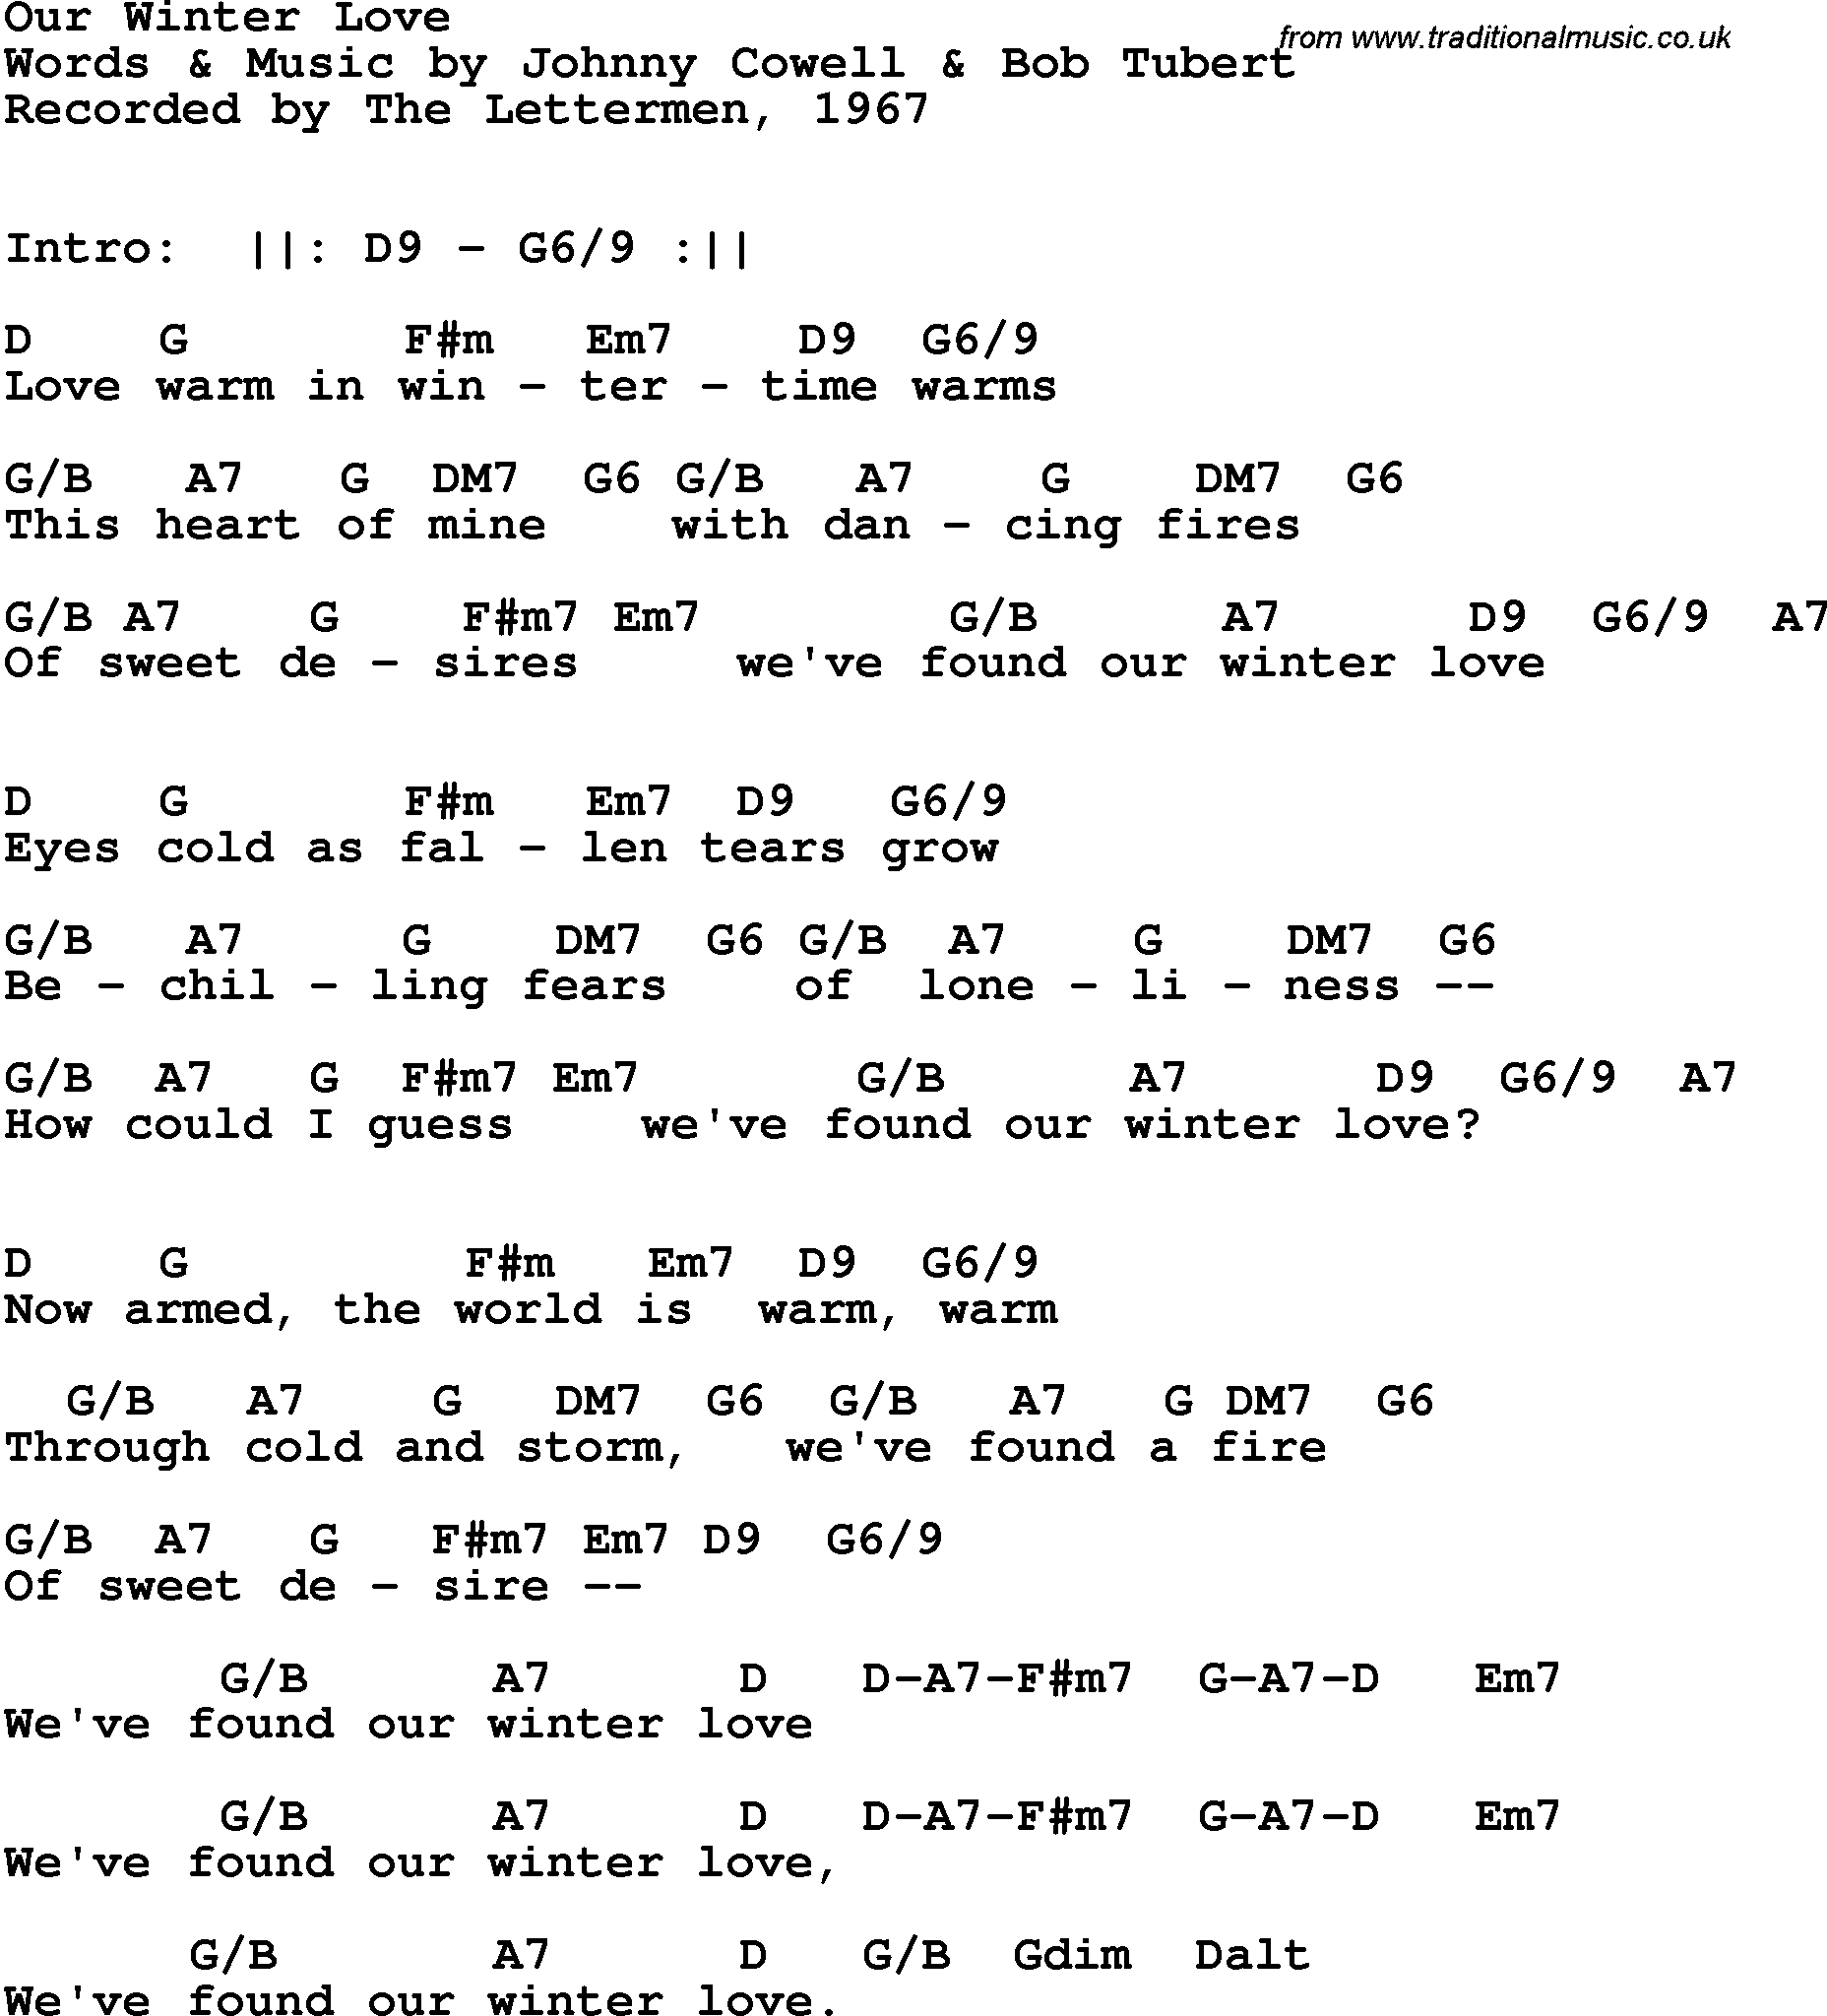 Song Lyrics With Guitar Chords For Our Winter Love The Lettermen 1967